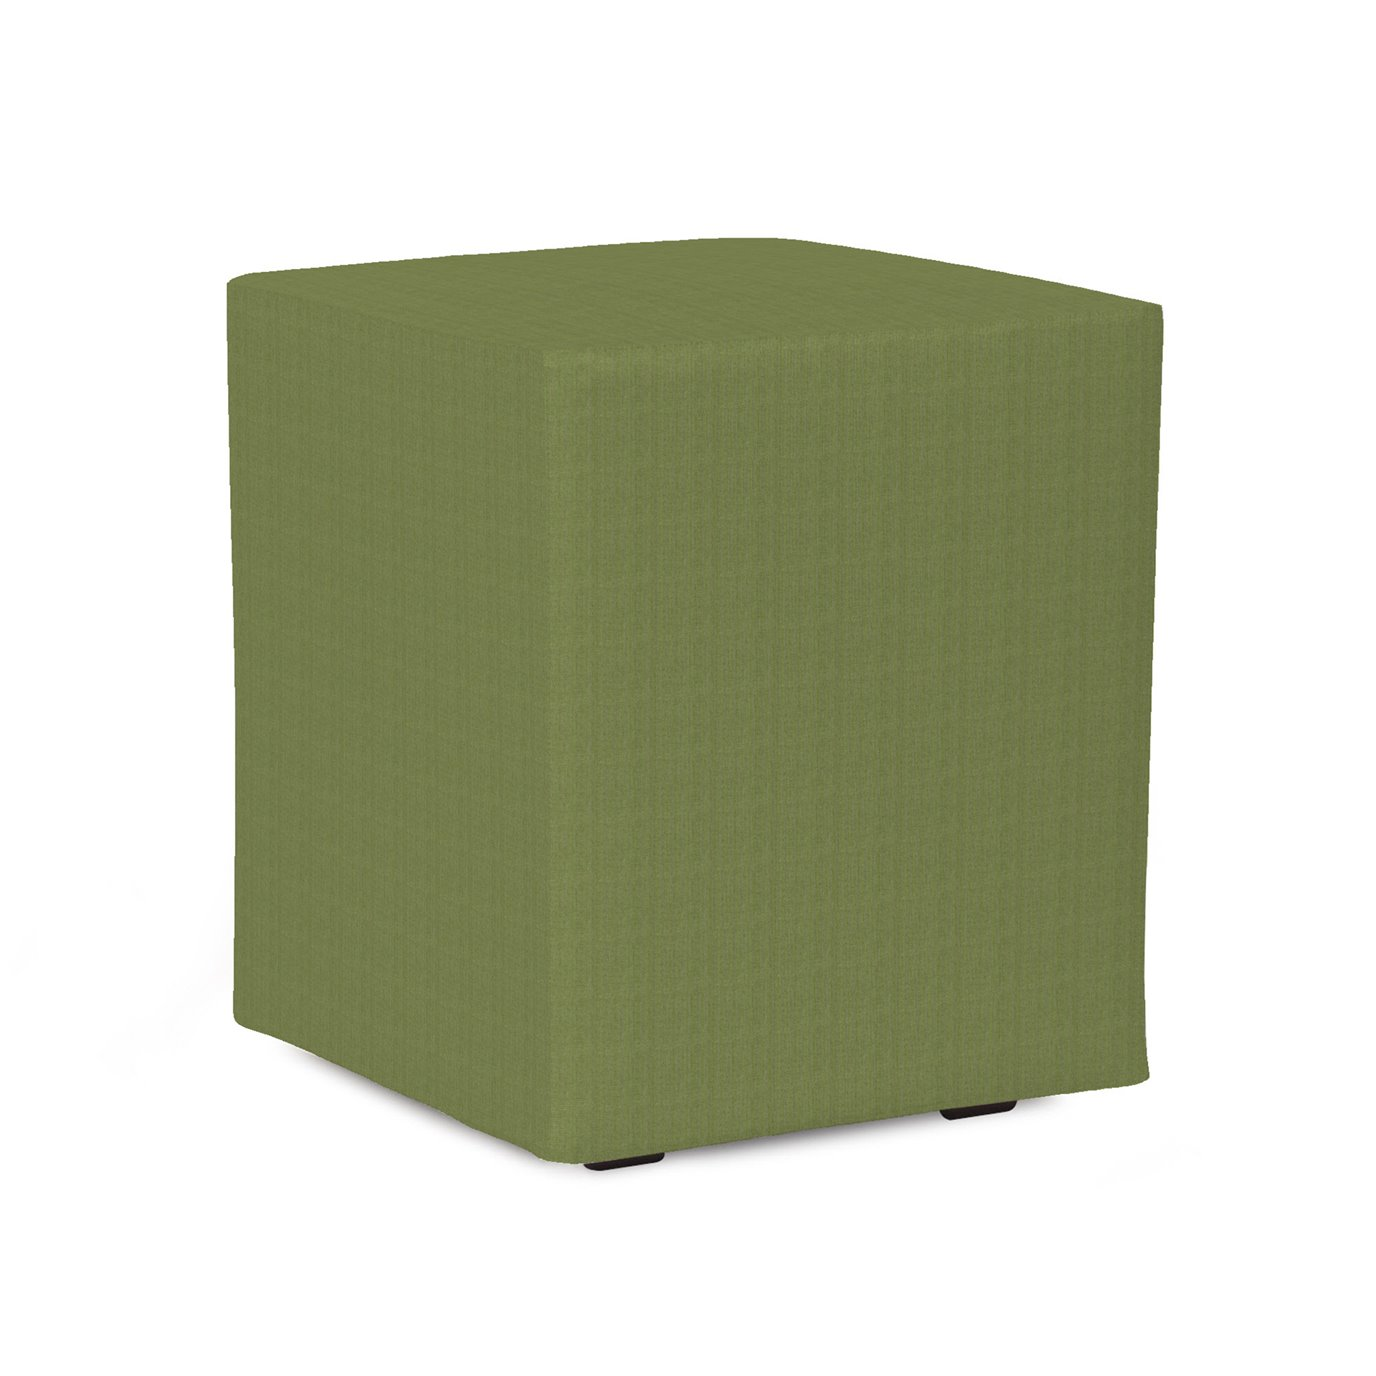 Howard Elliott Universal Cube Cover Sunbrella Outdoor Seascape Moss - Cover Only, Base Not Included